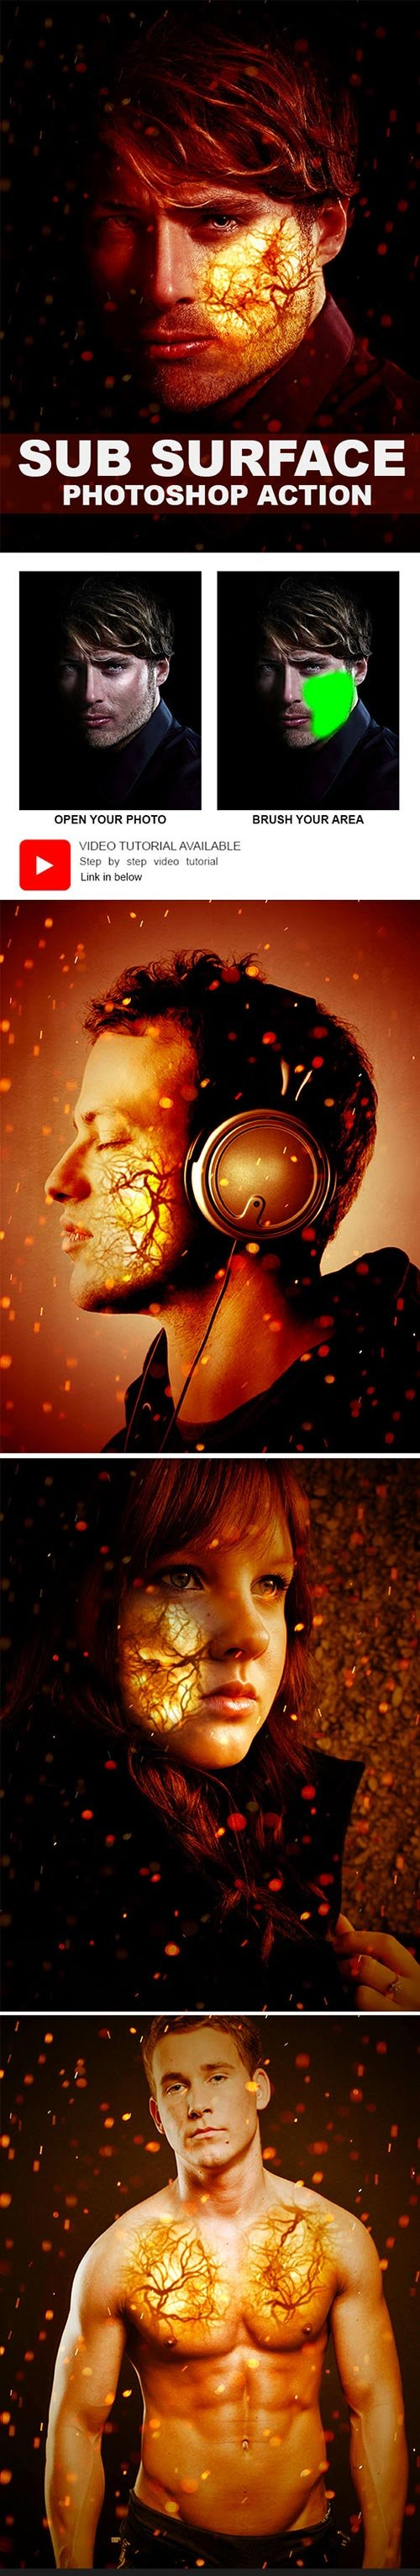 GraphicRiver - Sub Surface Photoshop Action 22121634